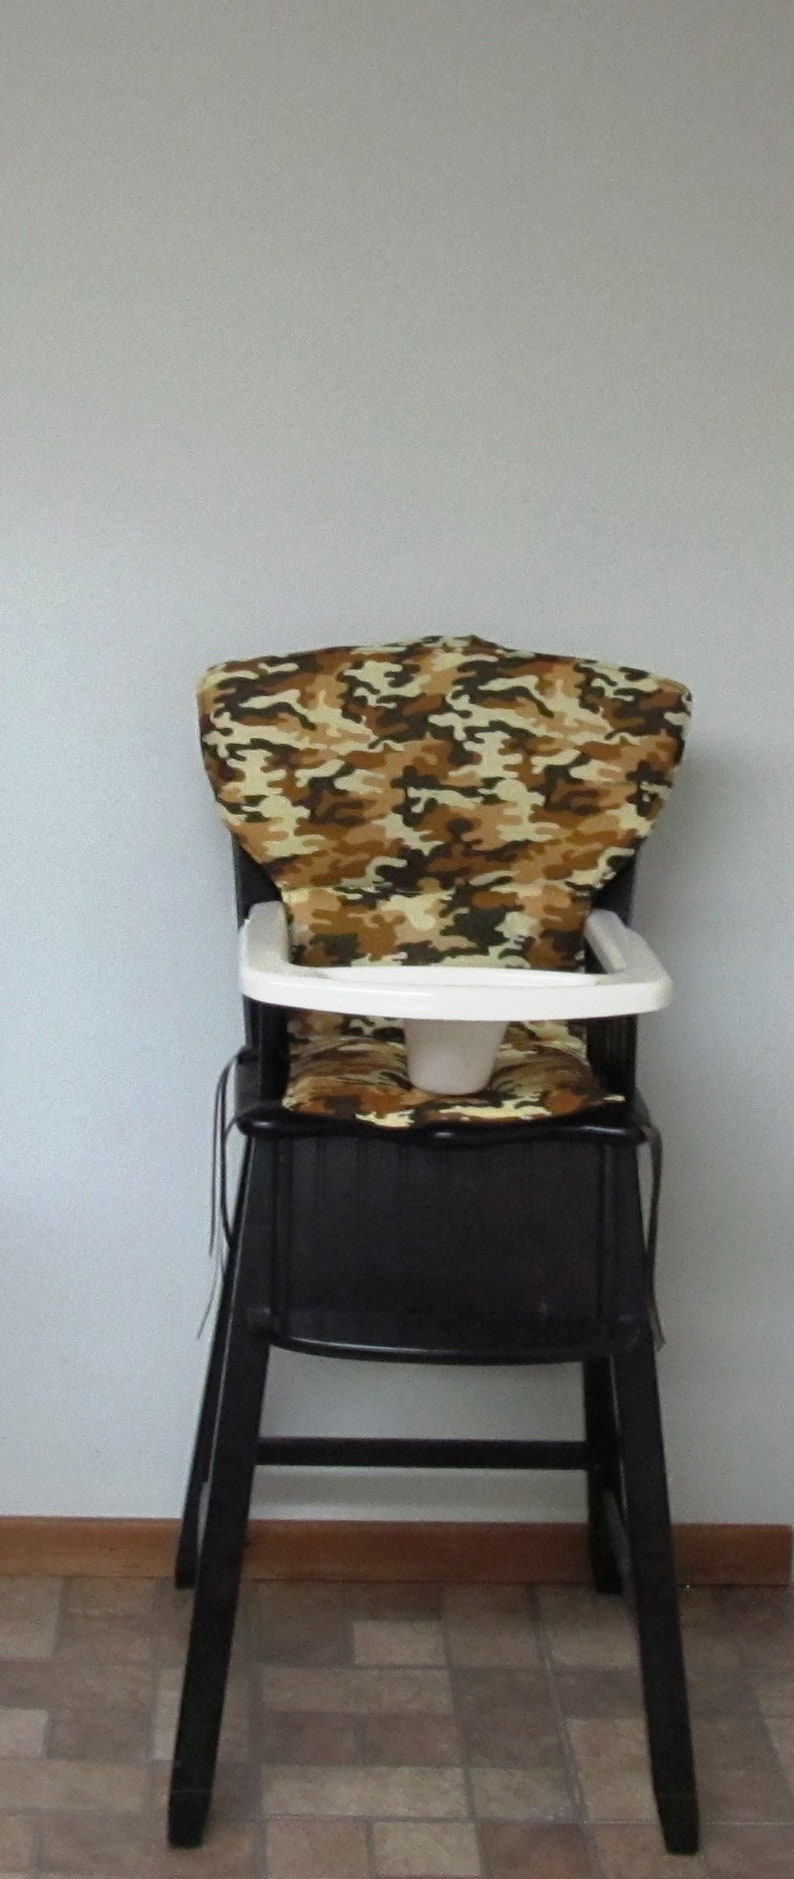 Newport Style Eddie Bauer Or Safety 1st Wood High Chair Cover Cowboy Camo Chair Replacement Pad Seat Cover Kids Feeding Chair Protector